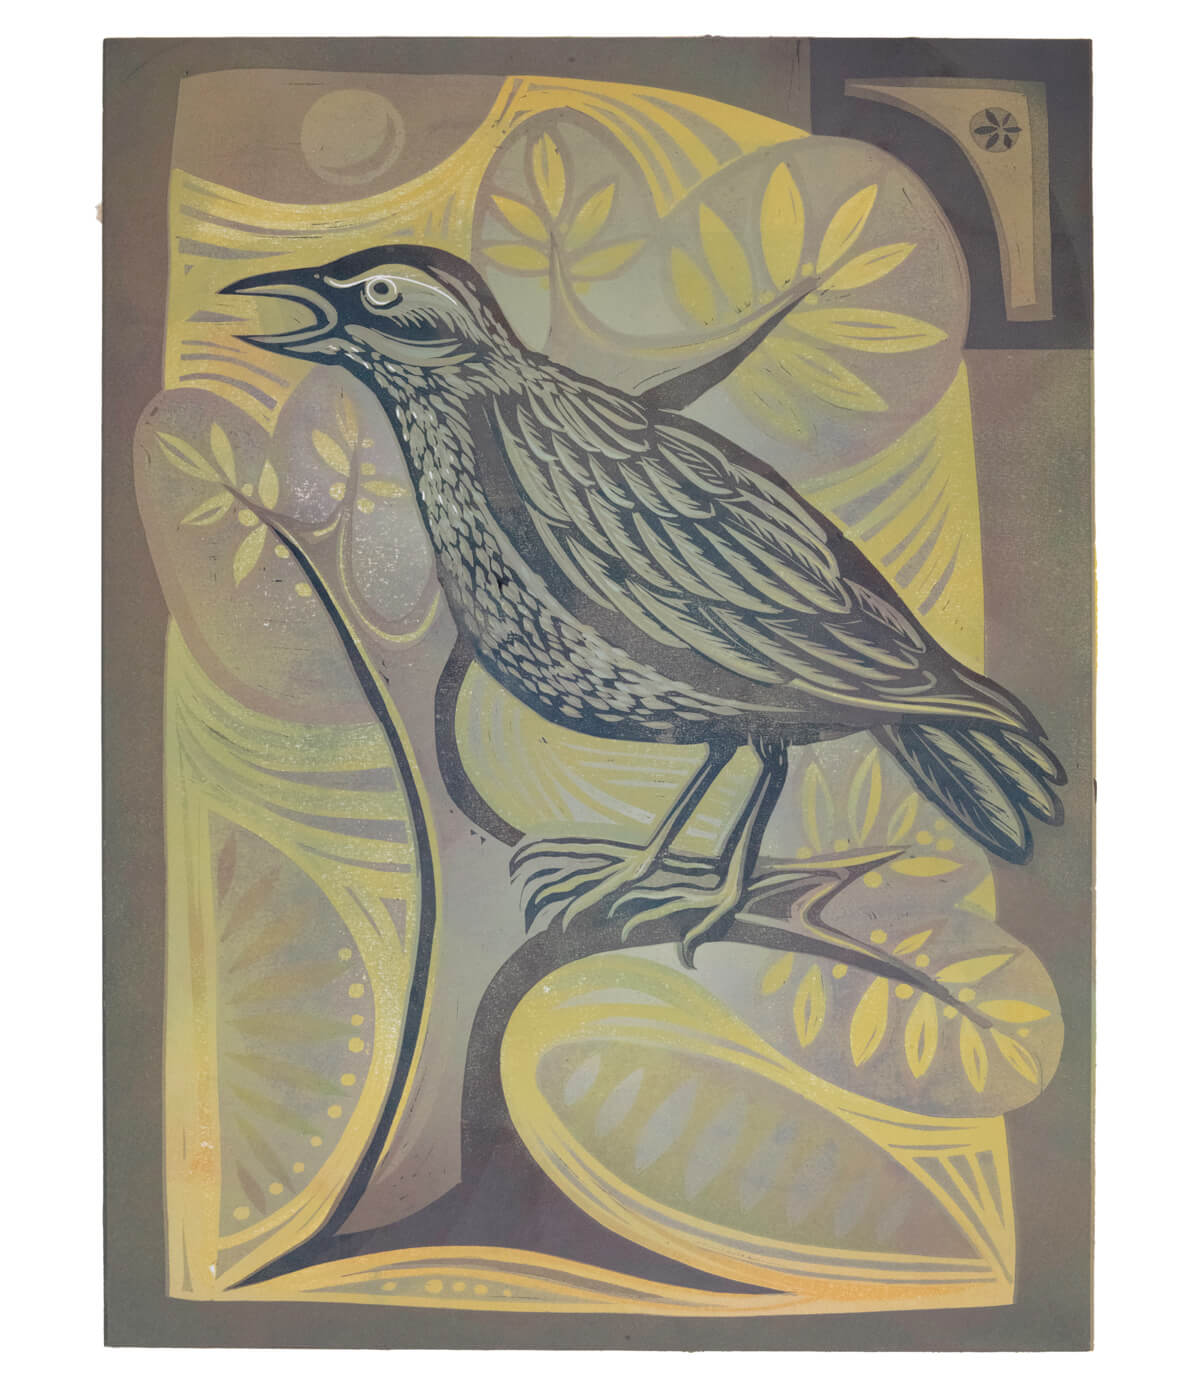 Mrs Griffiths' Lark, a linocut print by Sarah Kirby